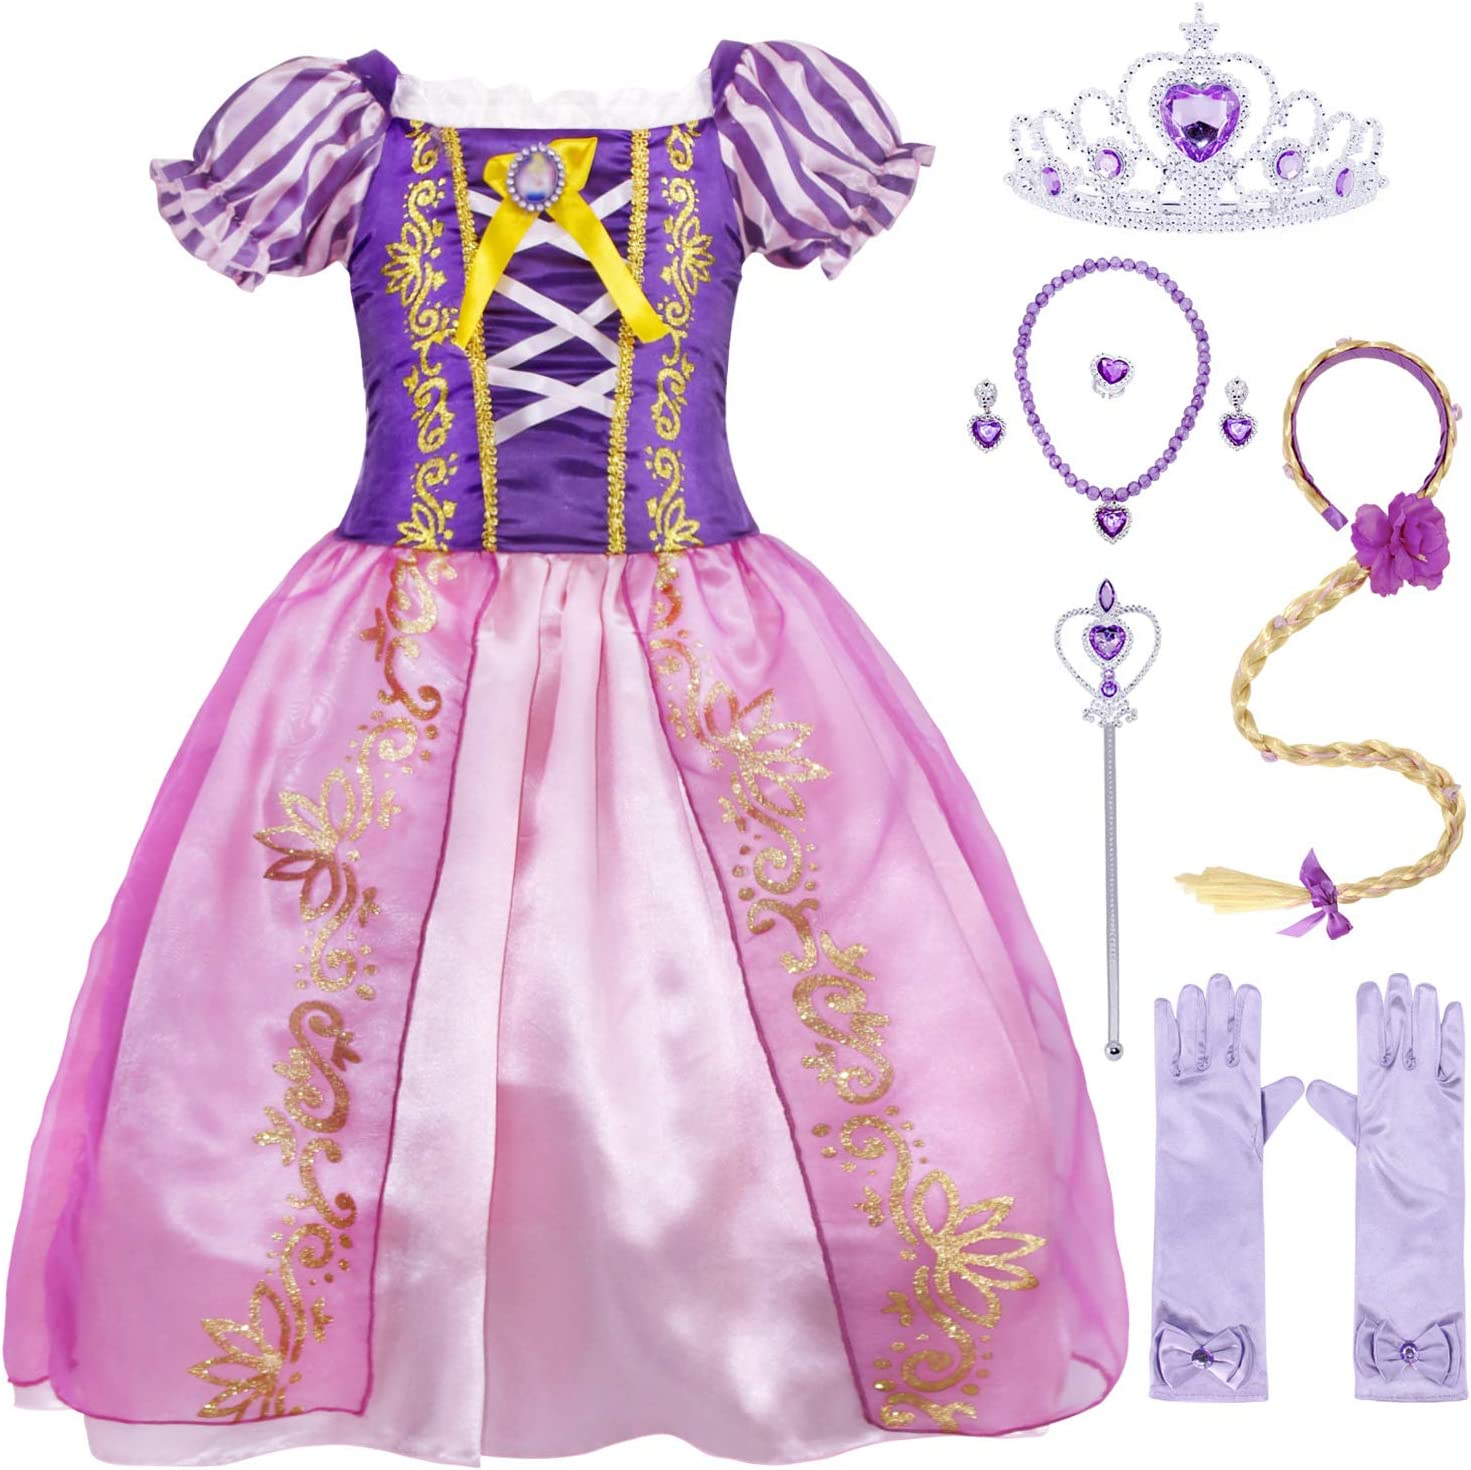 AmzBarley Rapunzel Princess Dress Up Little Girls Cosplay Party Costume Halloween Role Play with Hair Purple 4t,2-3 Years